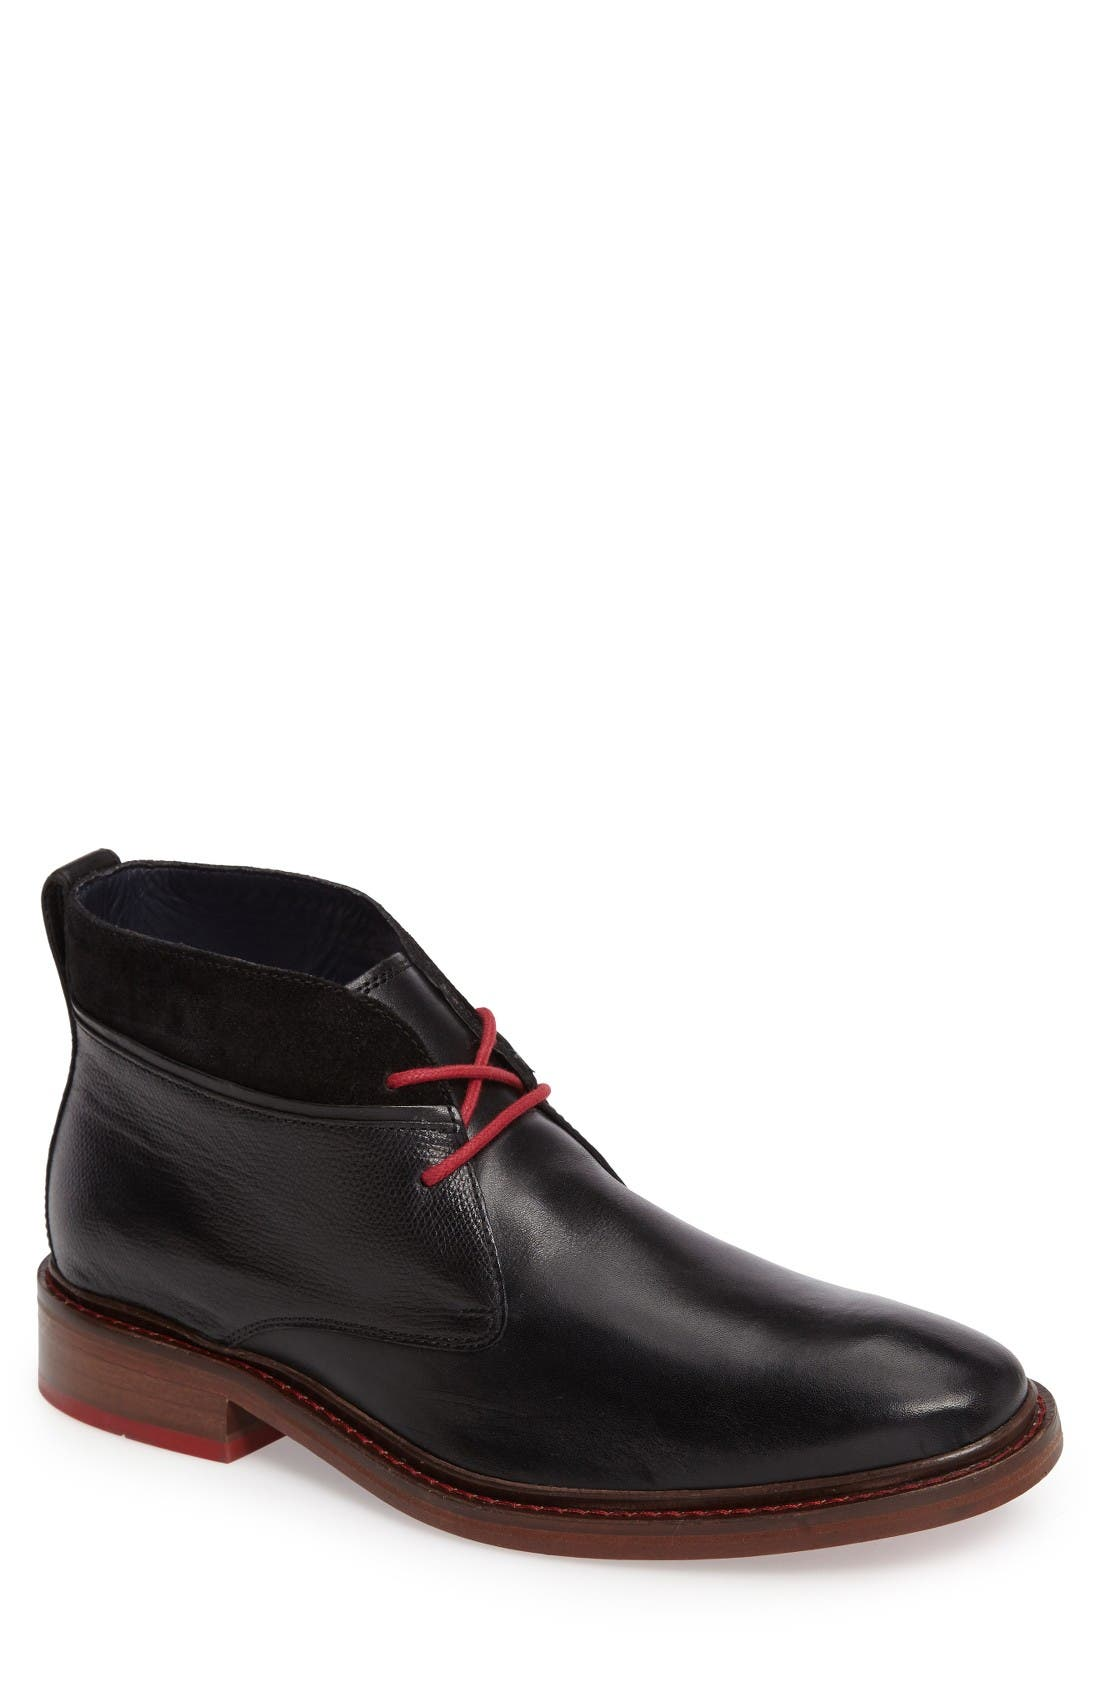 Main Image - Cole Haan 'Colton' Chukka Boot (Men) (Nordstrom Exclusive)